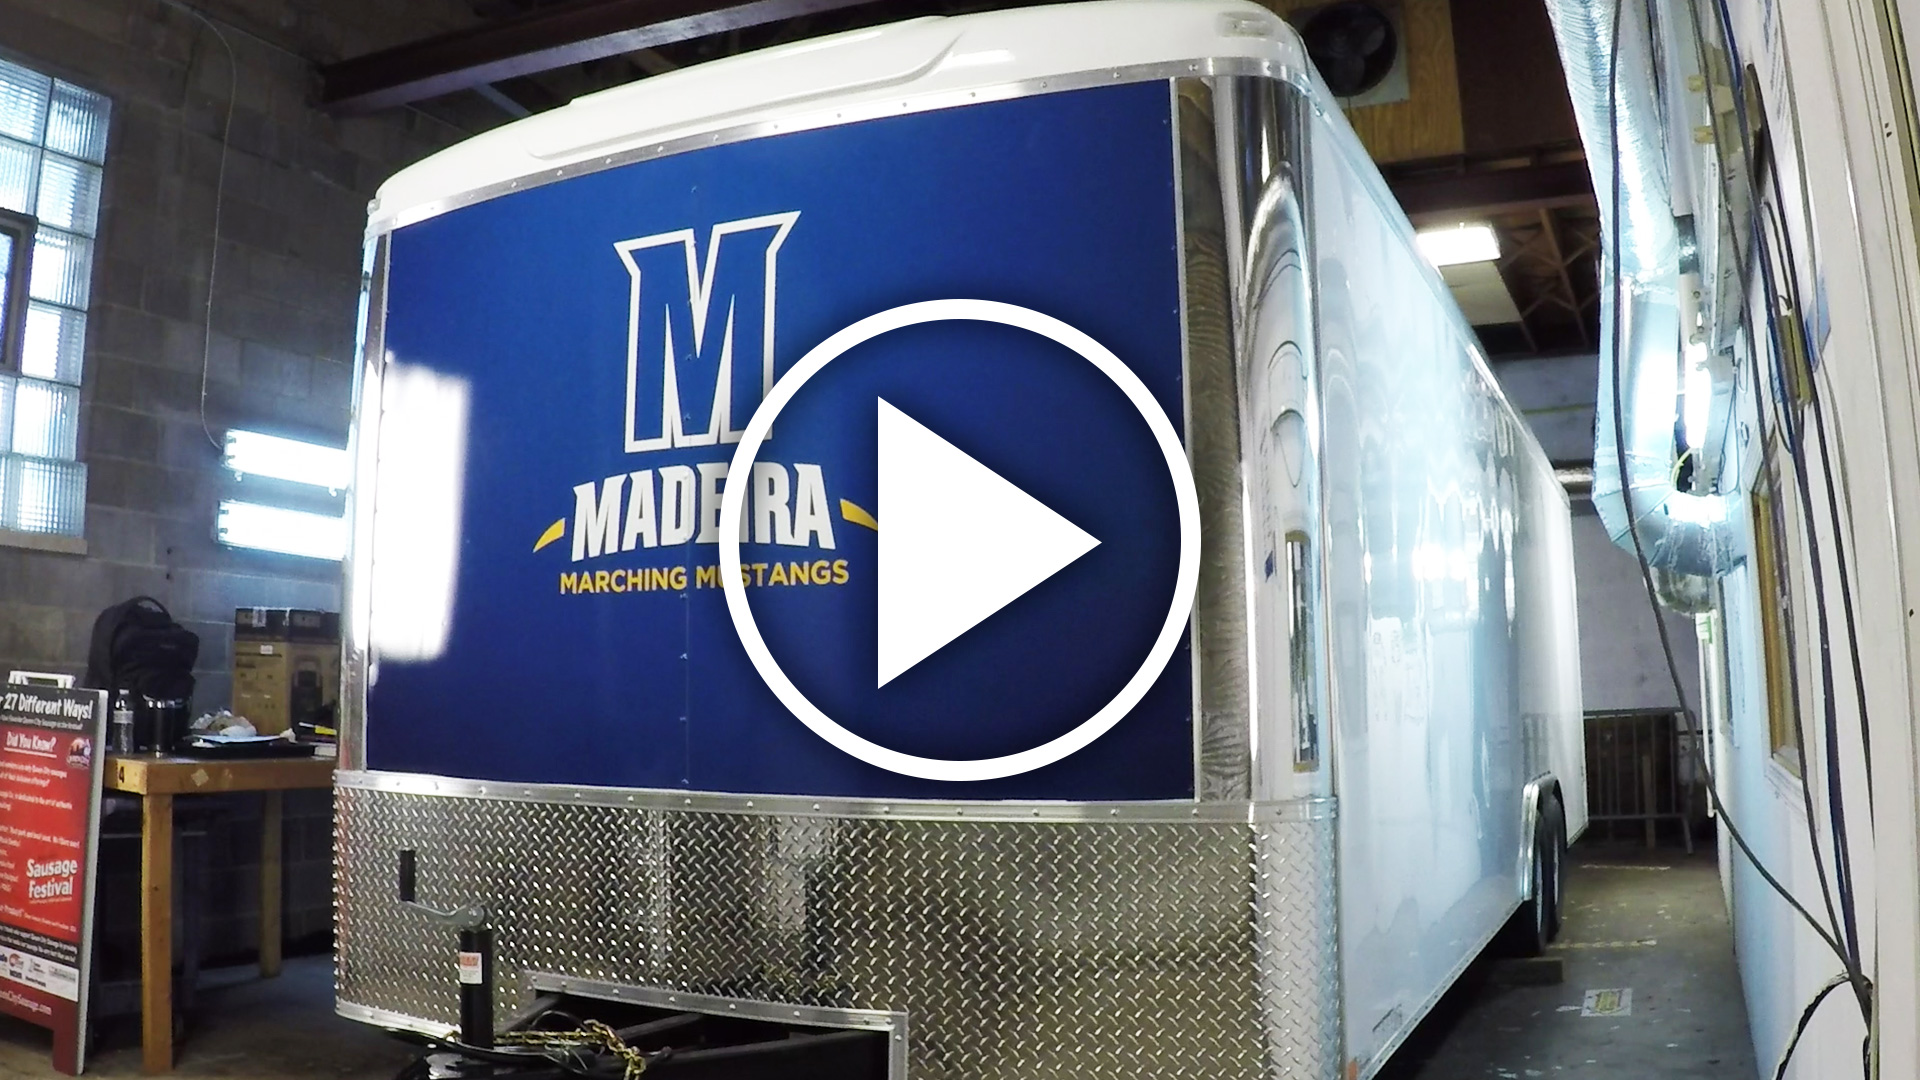 Madeira Marching Mustang Trailer Graphic Install